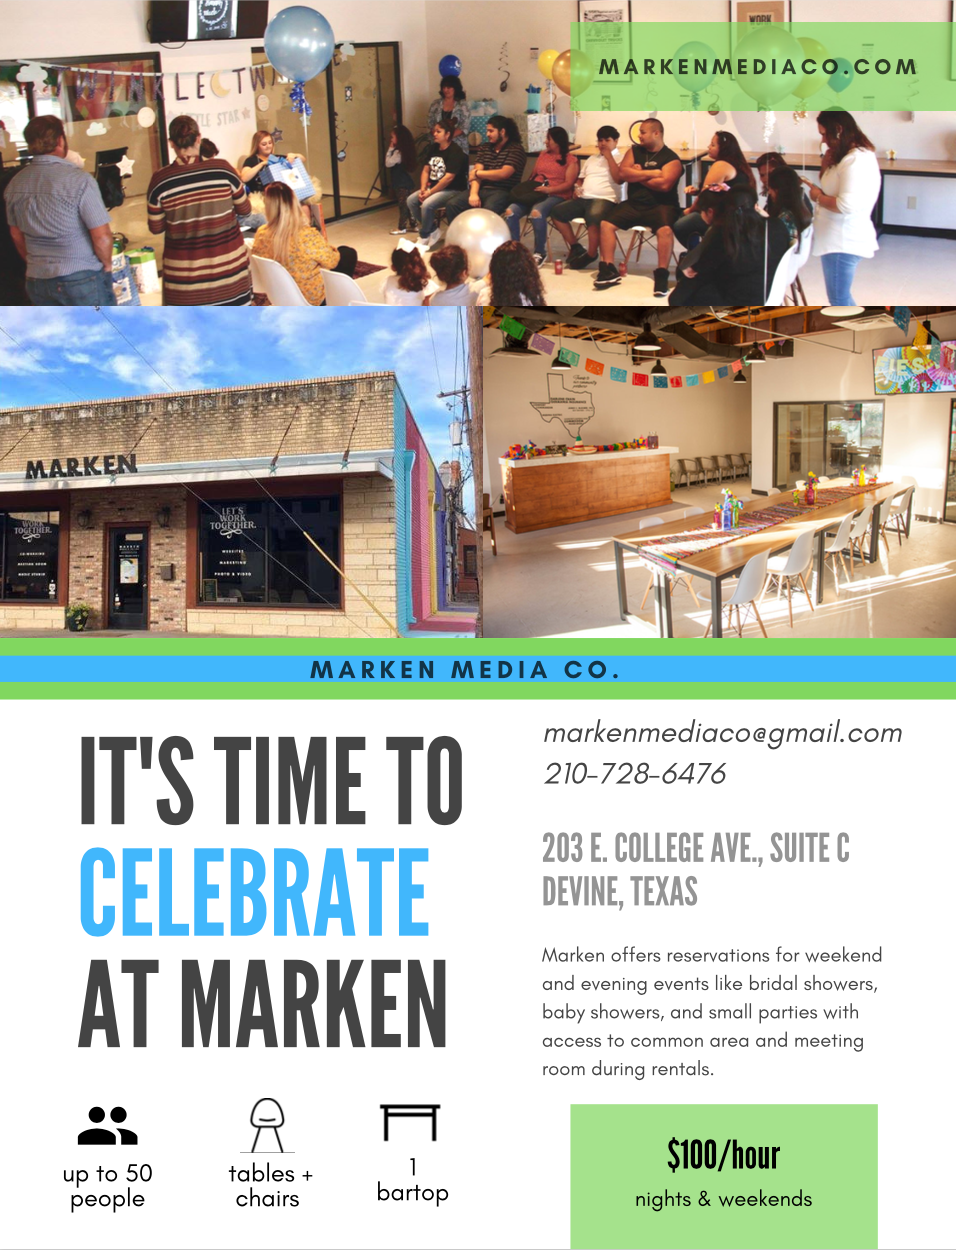 Marken_Devine Color Wall_Texas_Party Rentals_Space.png